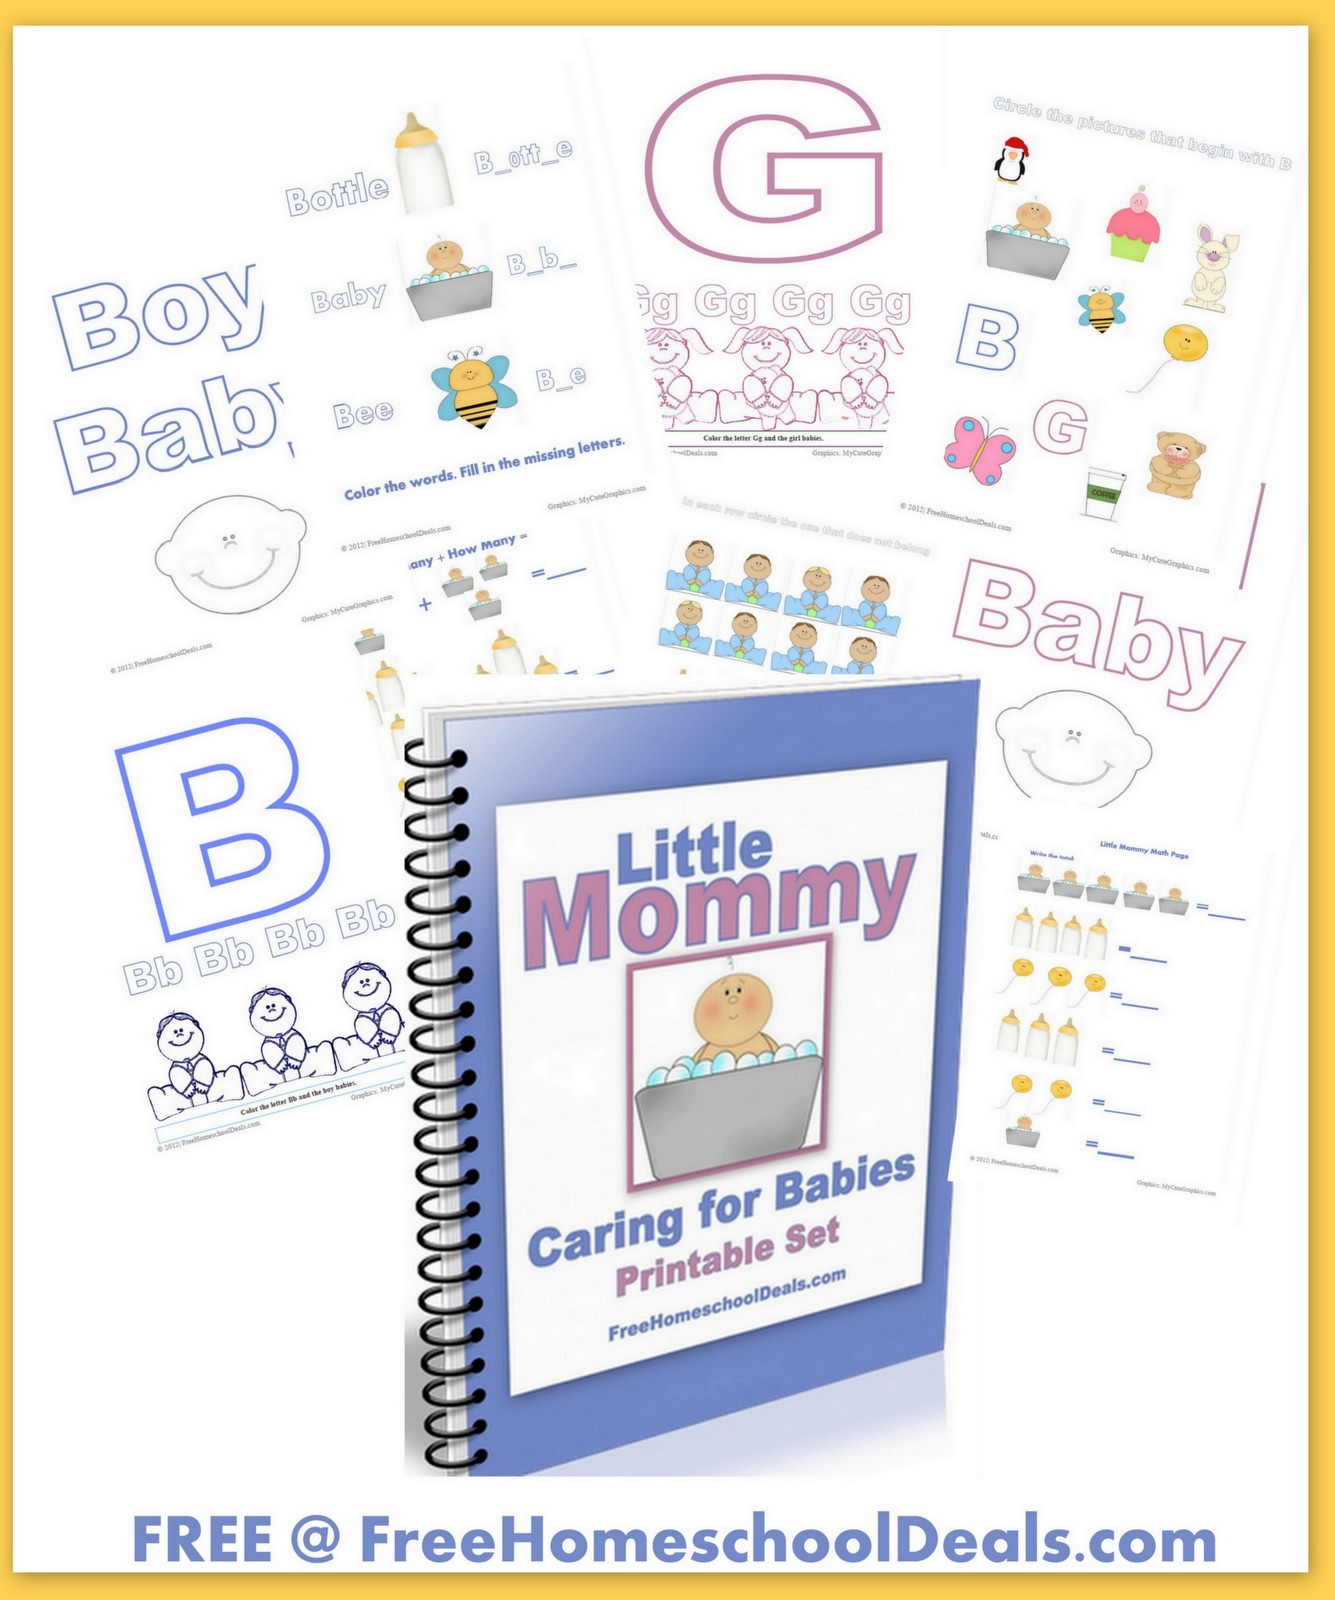 Free Printable Set Little Mommy Caring For Babies